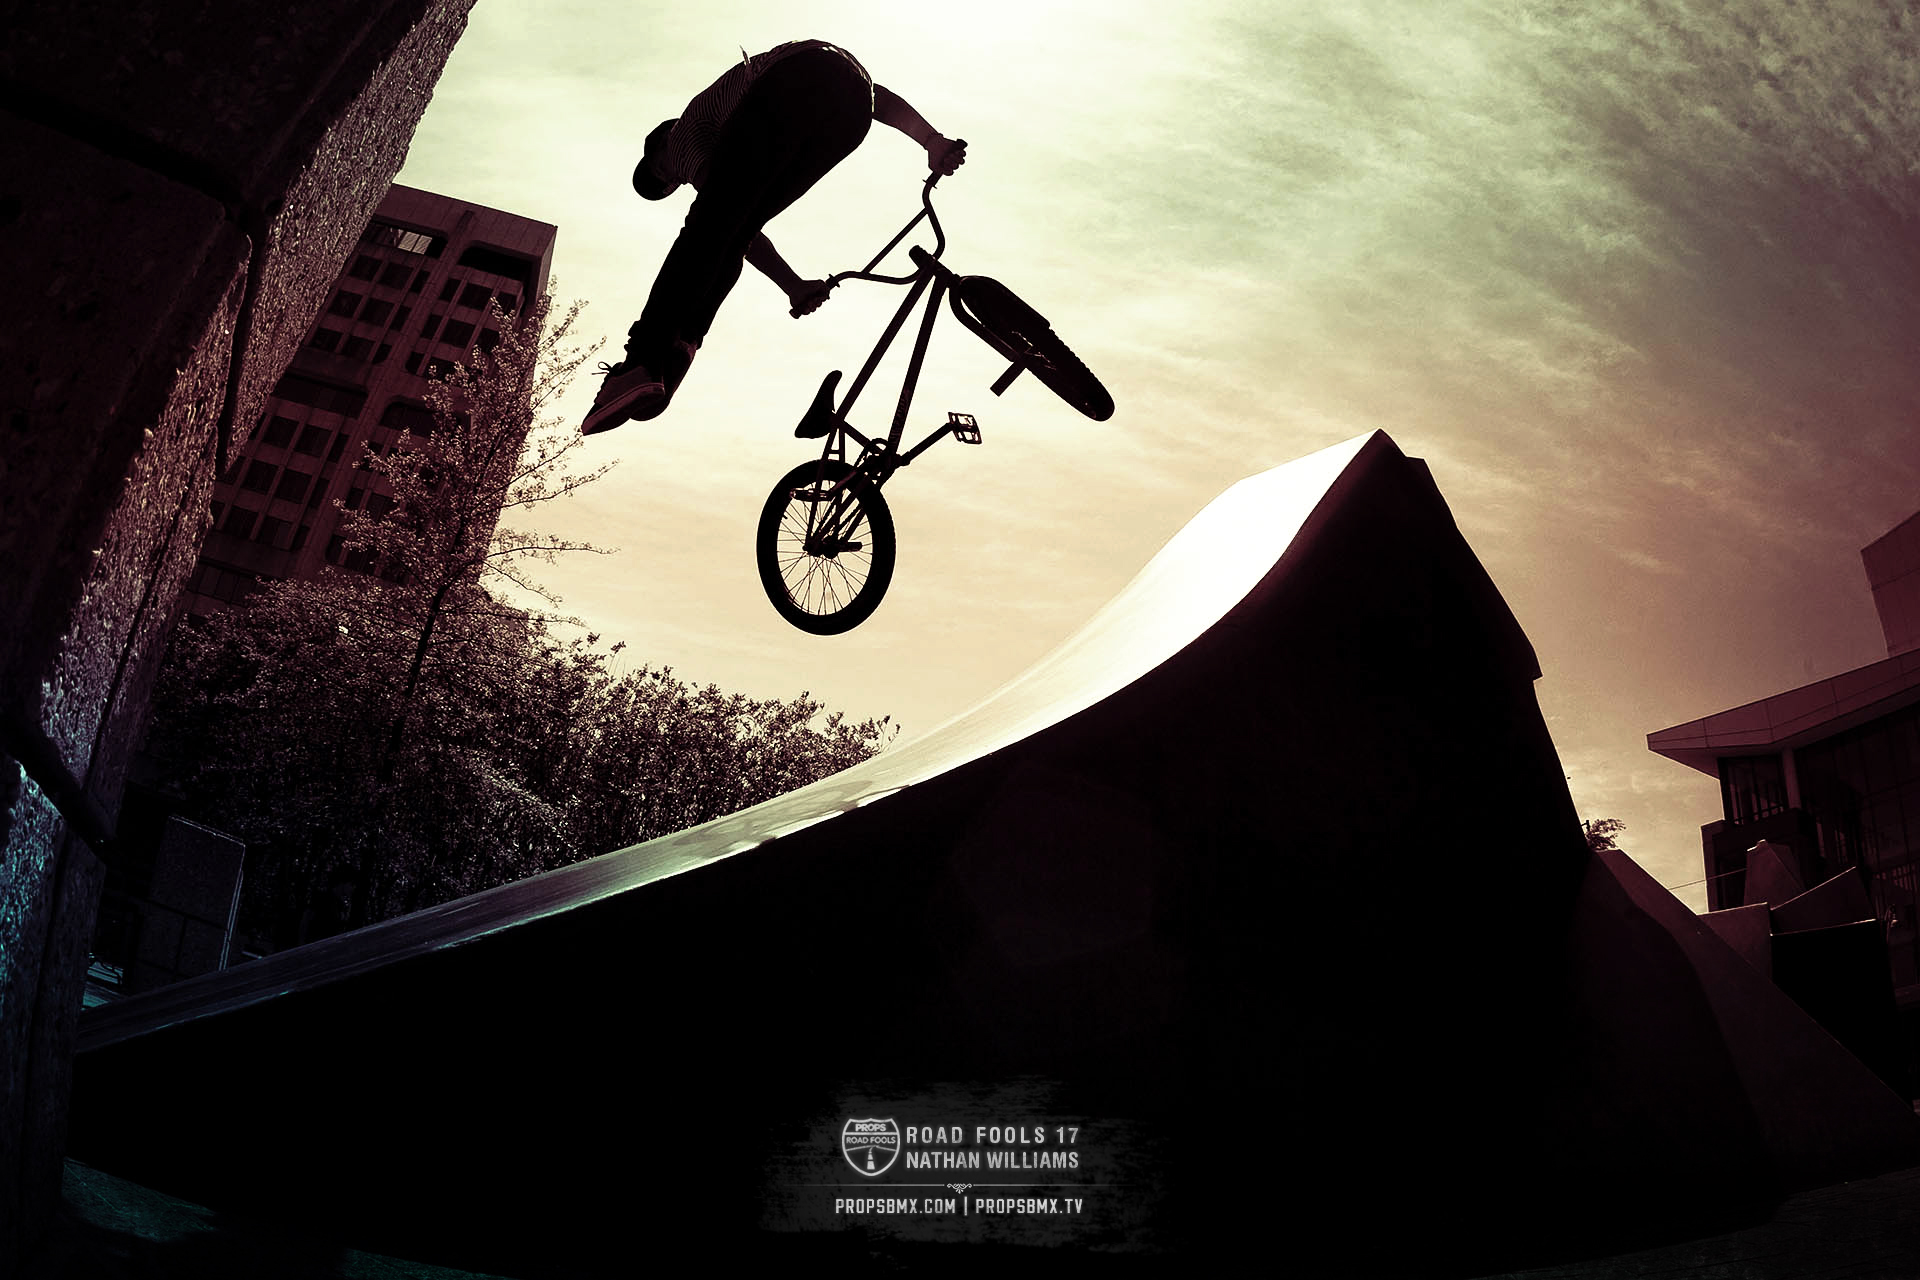 Wallpapers props bmx nathan williams road fools 17 1920x1280 voltagebd Choice Image